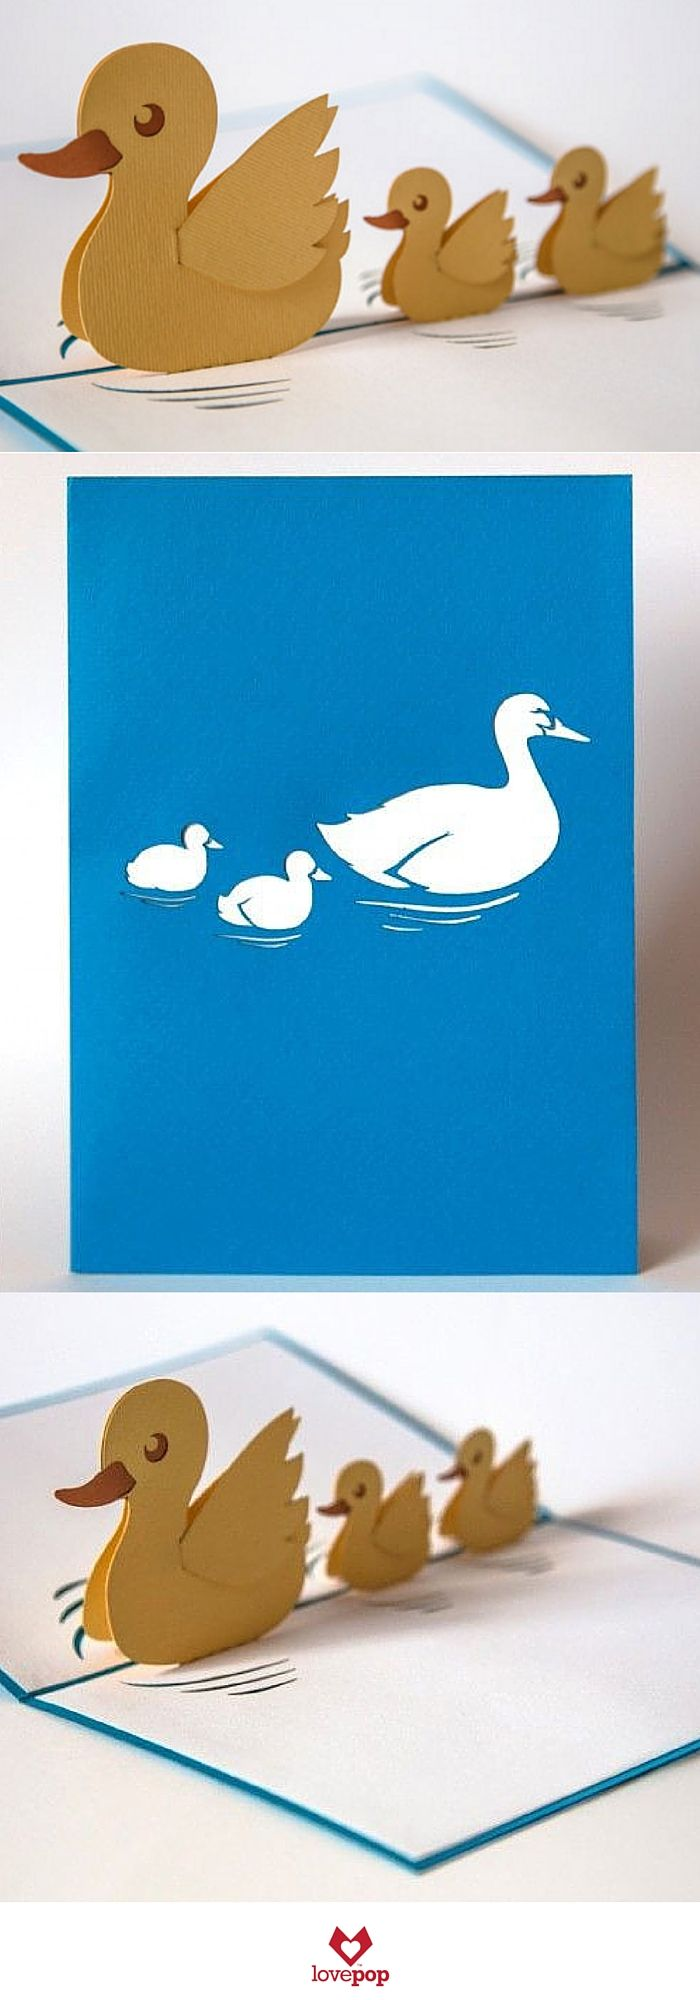 Adorable Ducks all in a row pop up out of this paper art card. Surprise new mom's with this pop up card. #babyshower